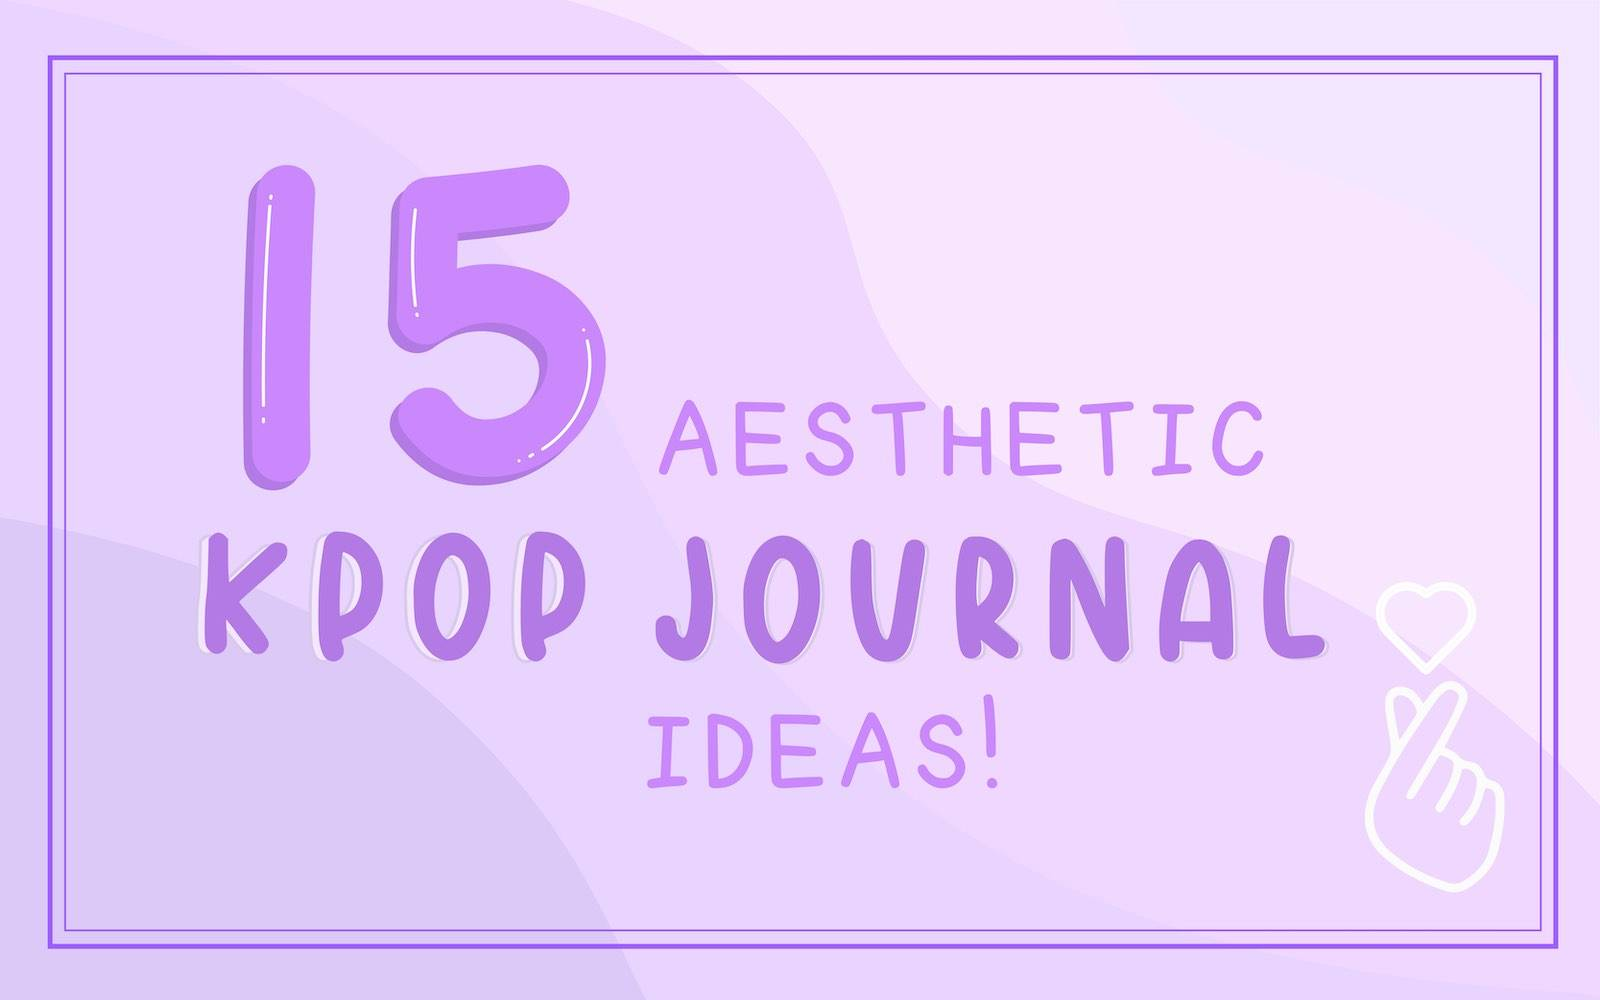 Awesome Bts Journal Cover Ideas wallpapers to download for free greenvirals